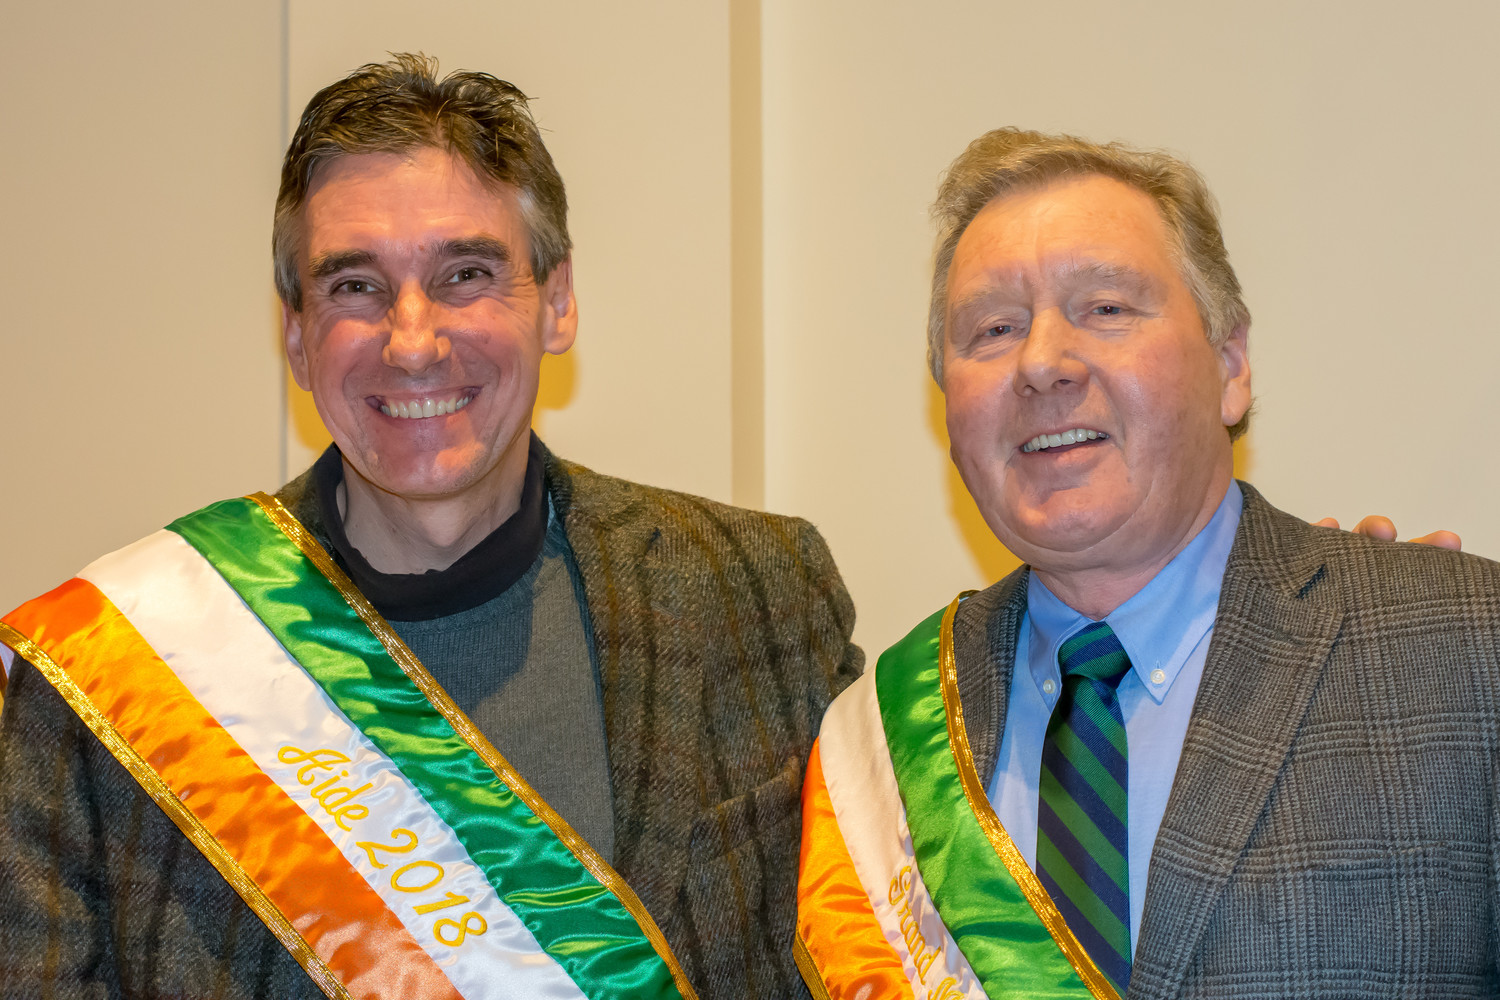 St. Patrick's Parade Aide Kevin Horton, former editor of the Gold Coast Gazette, left, was happy to be presented with an honorary sash alongside Grand Marshal Bill Doherty on Feb. 17.